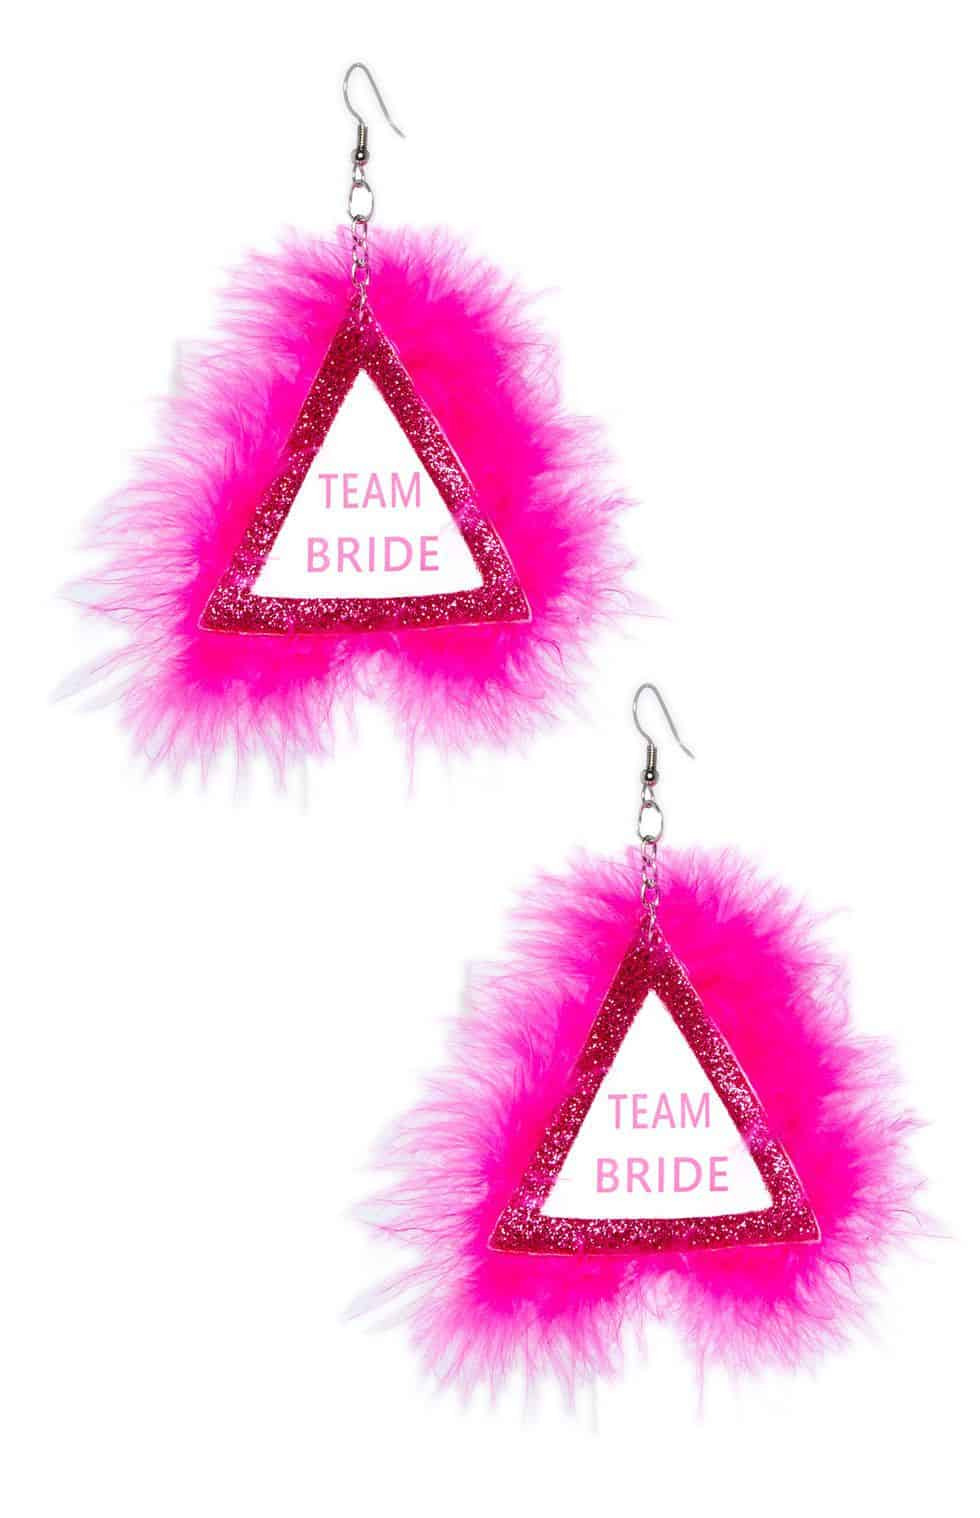 primark hen party earrings